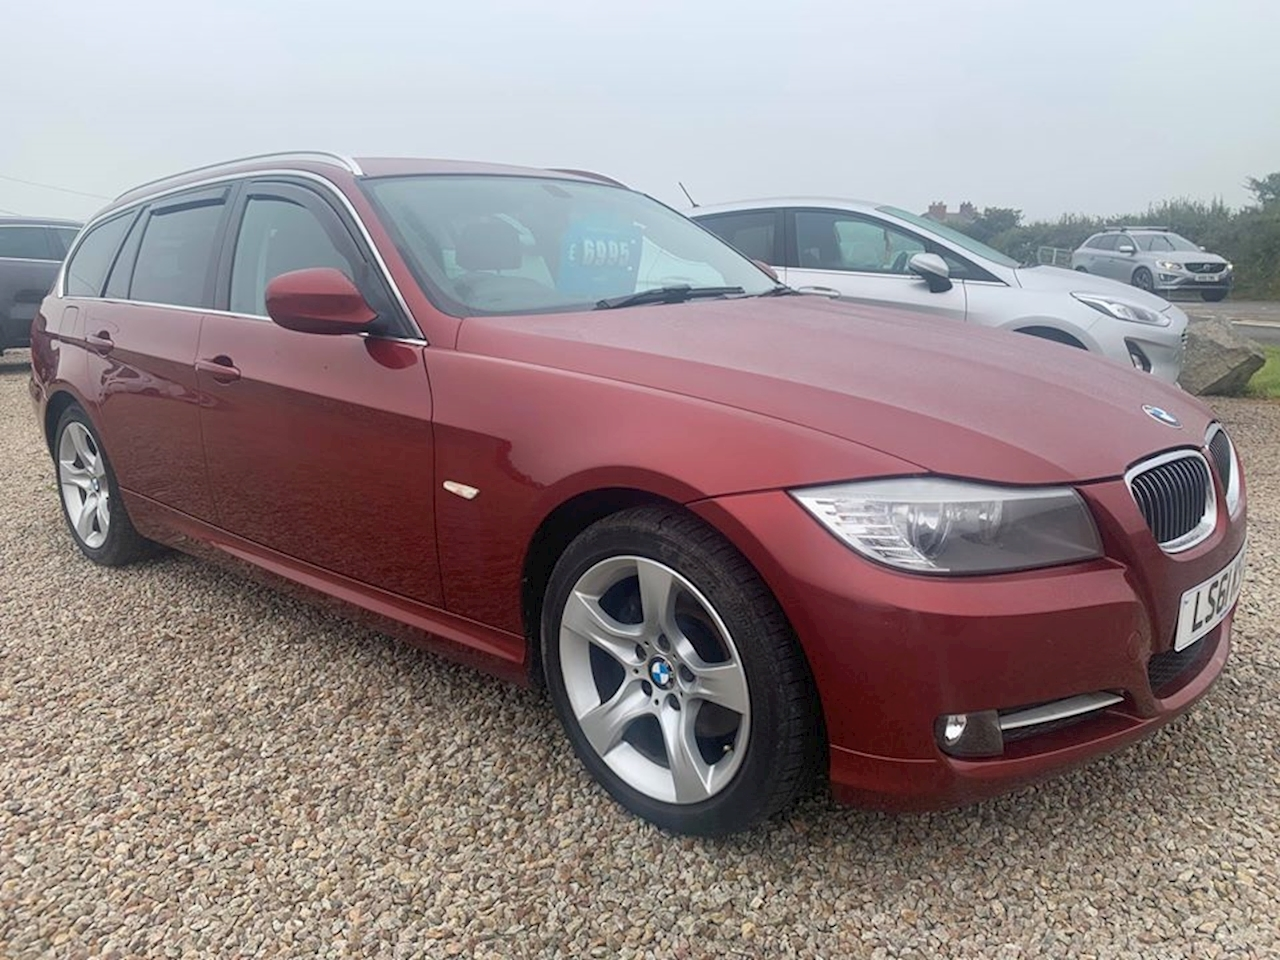 BMW 3 Series 320D Exclusive Touring Estate 2.0 Manual Diesel